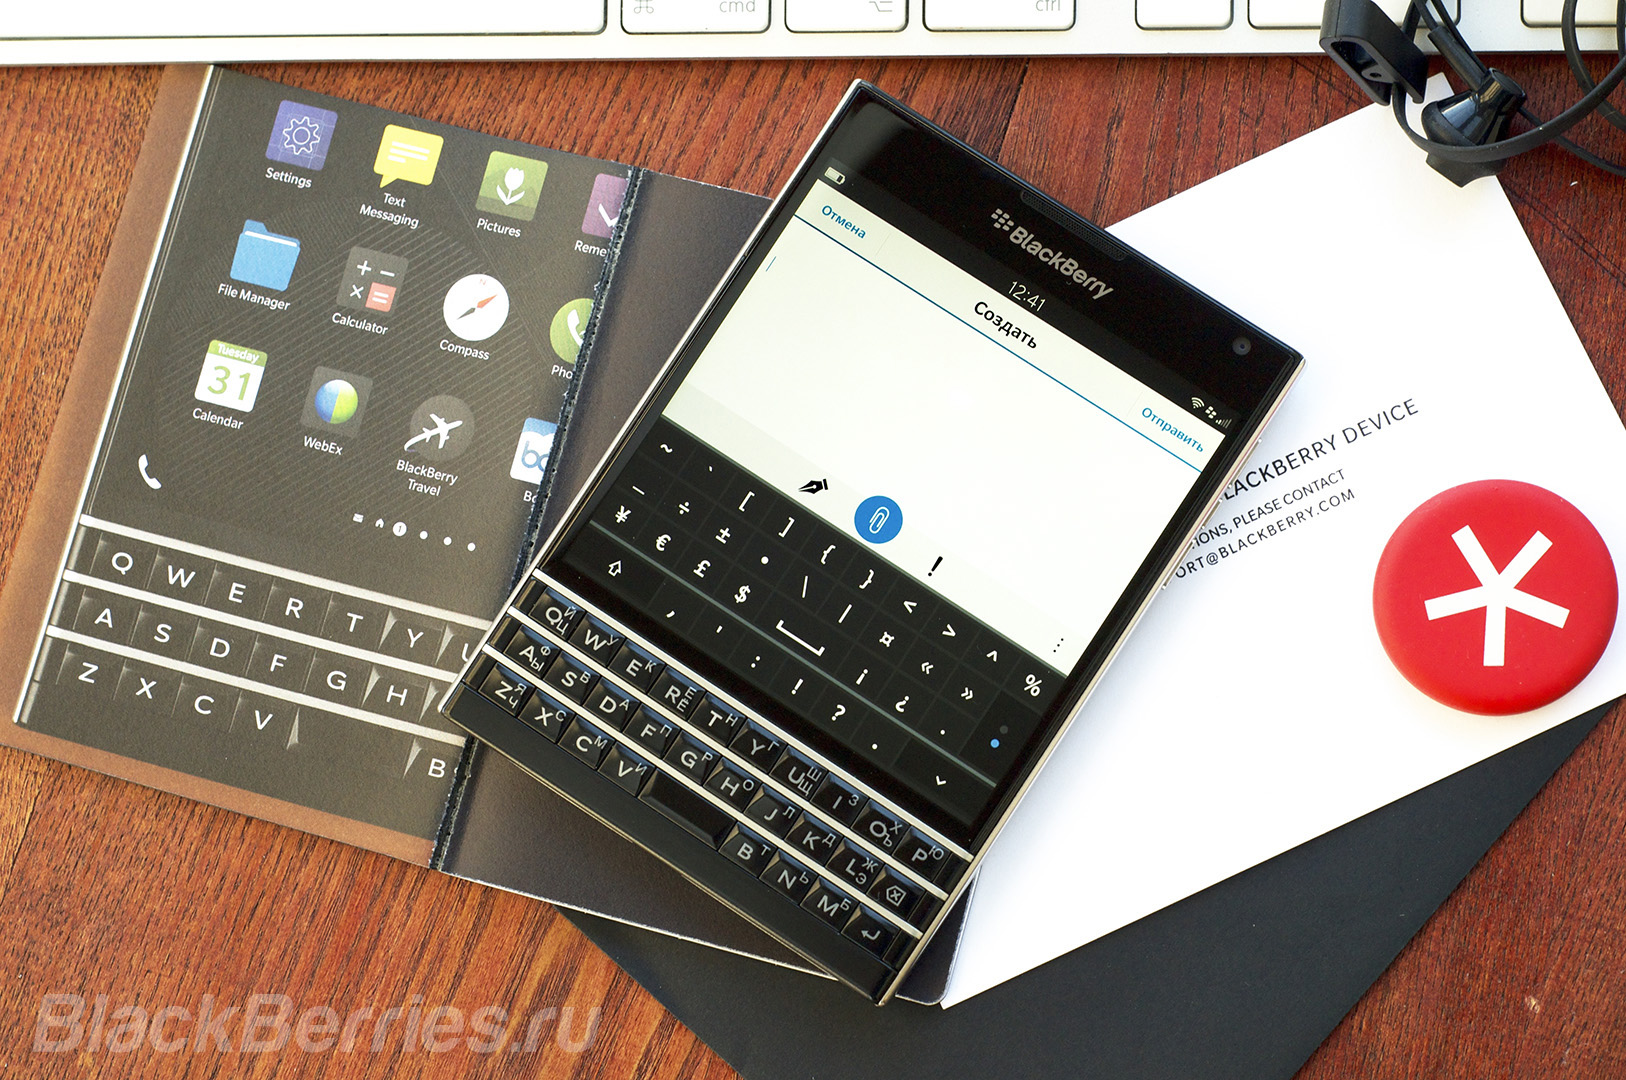 BlackBerry-Passport-Review-2016-24